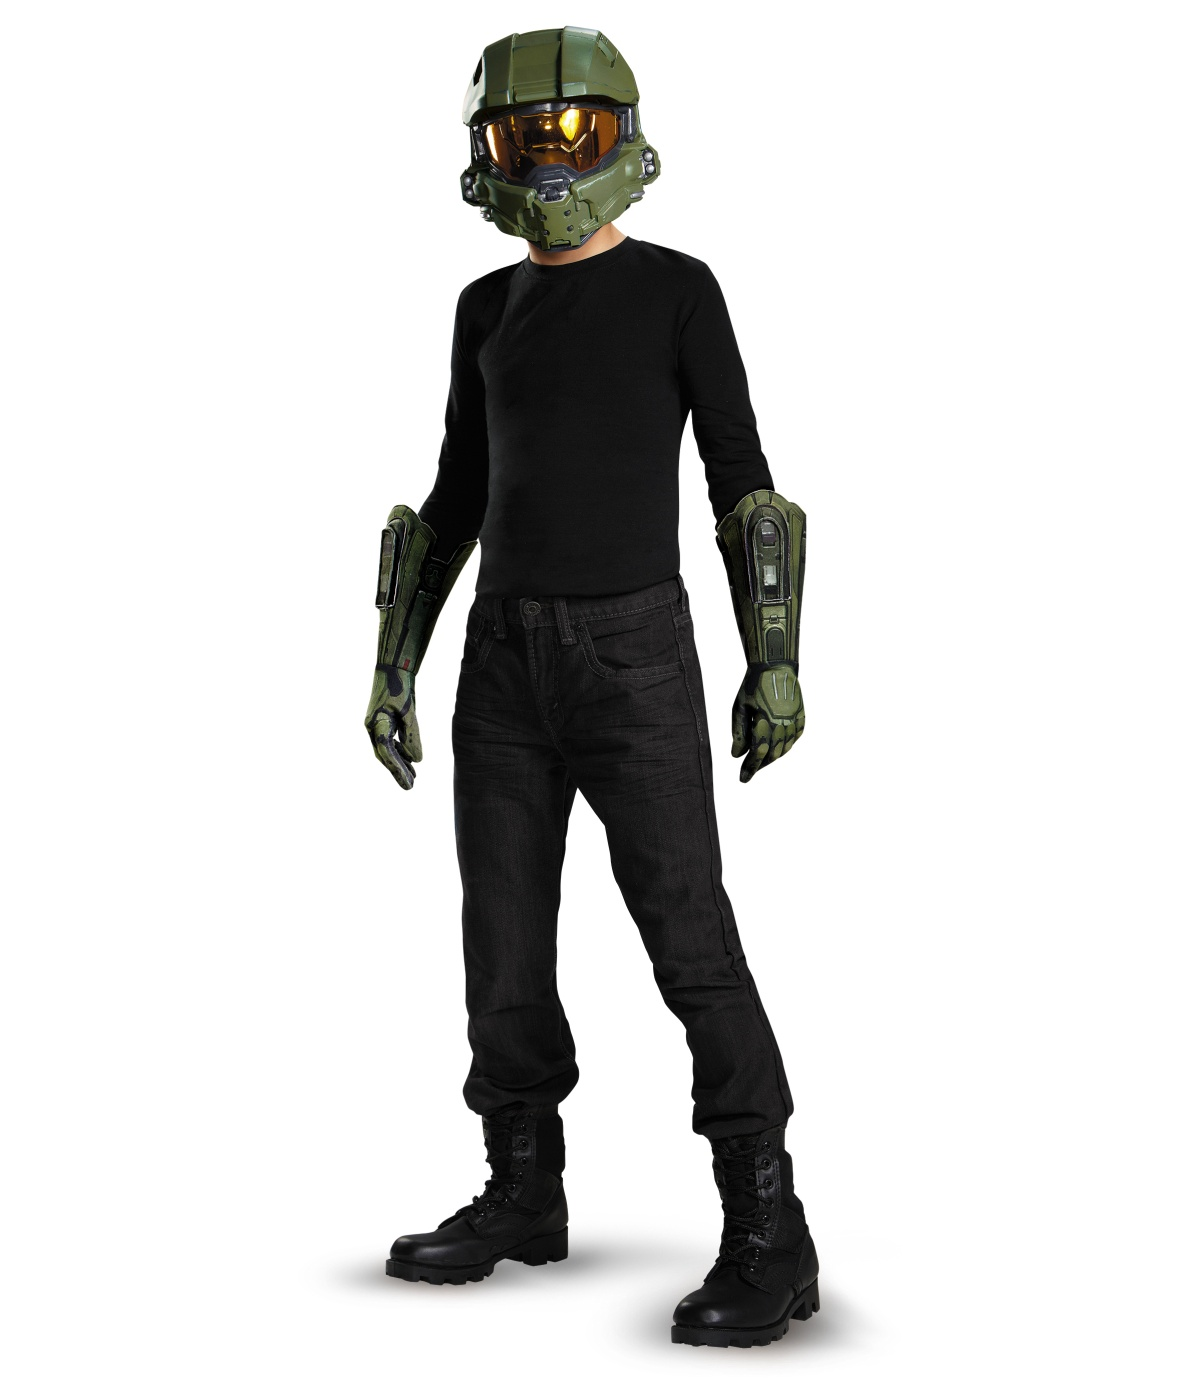 Master Chief Halo Boys Costume Kit  sc 1 st  Wonder Costumes & Master Chief Boys Costume Kit - Video Game Costumes